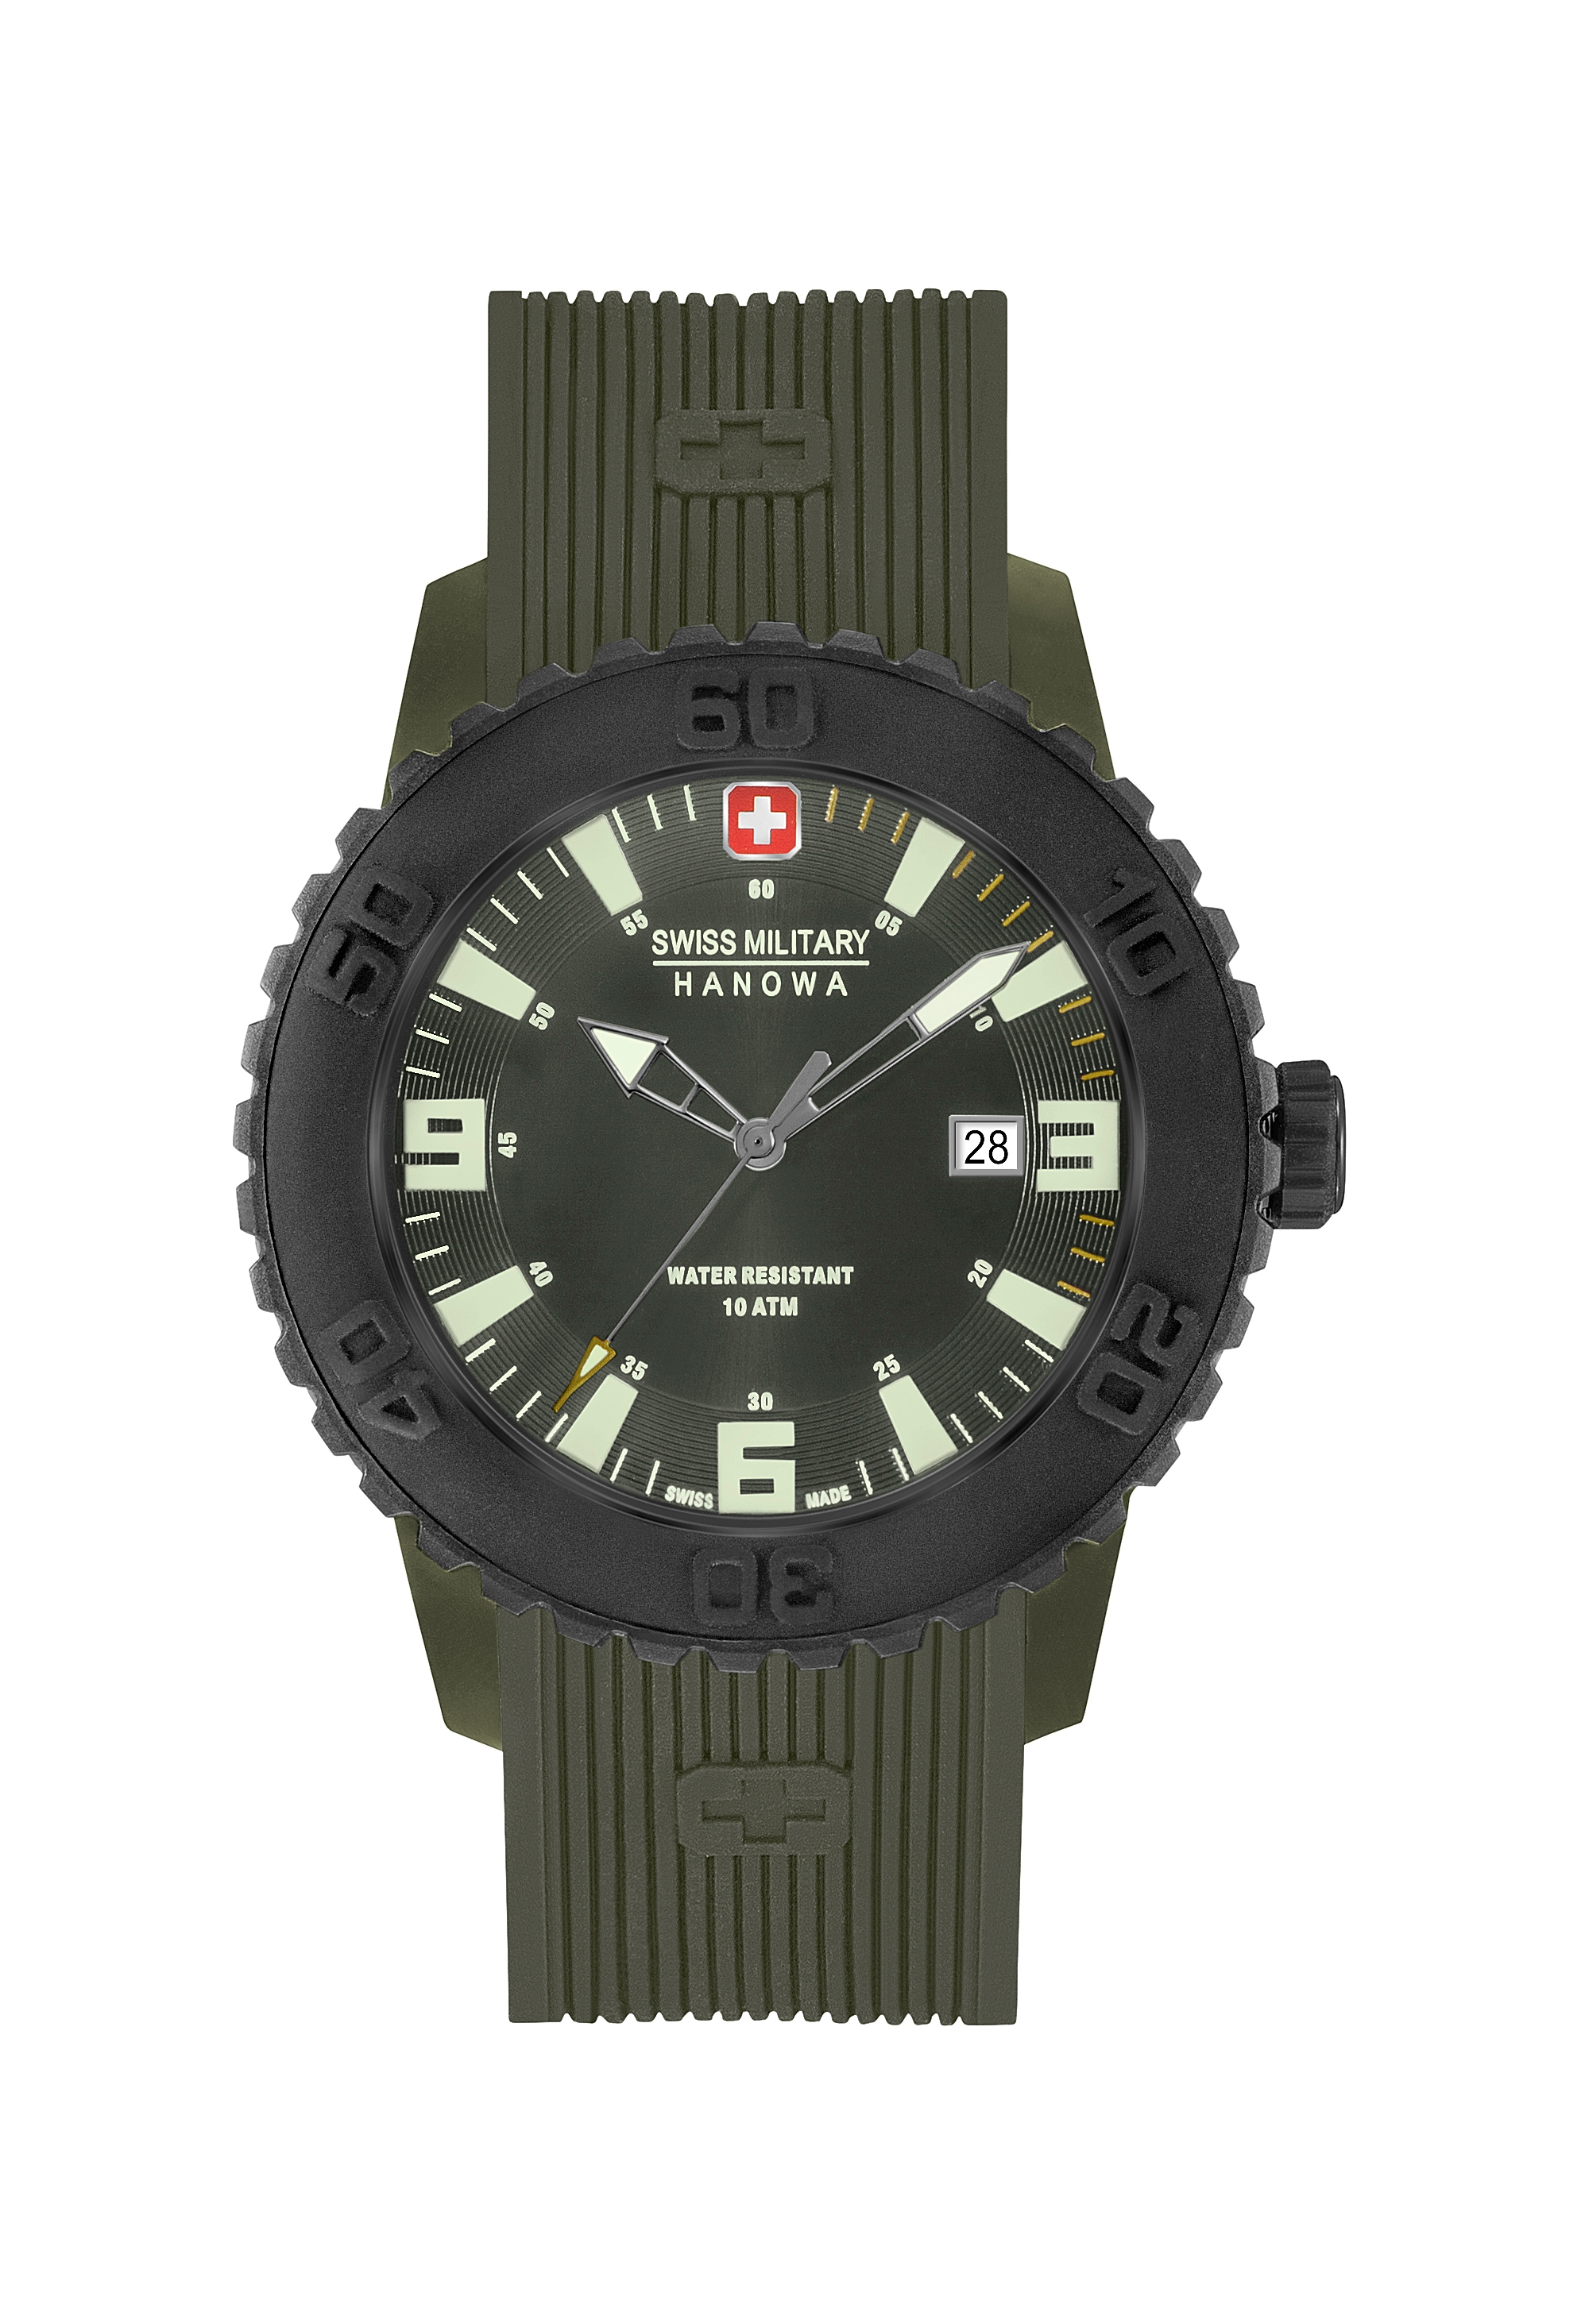 free en army undercover military worldwide shipping swiss watches clocks hanowa multifunction ranger